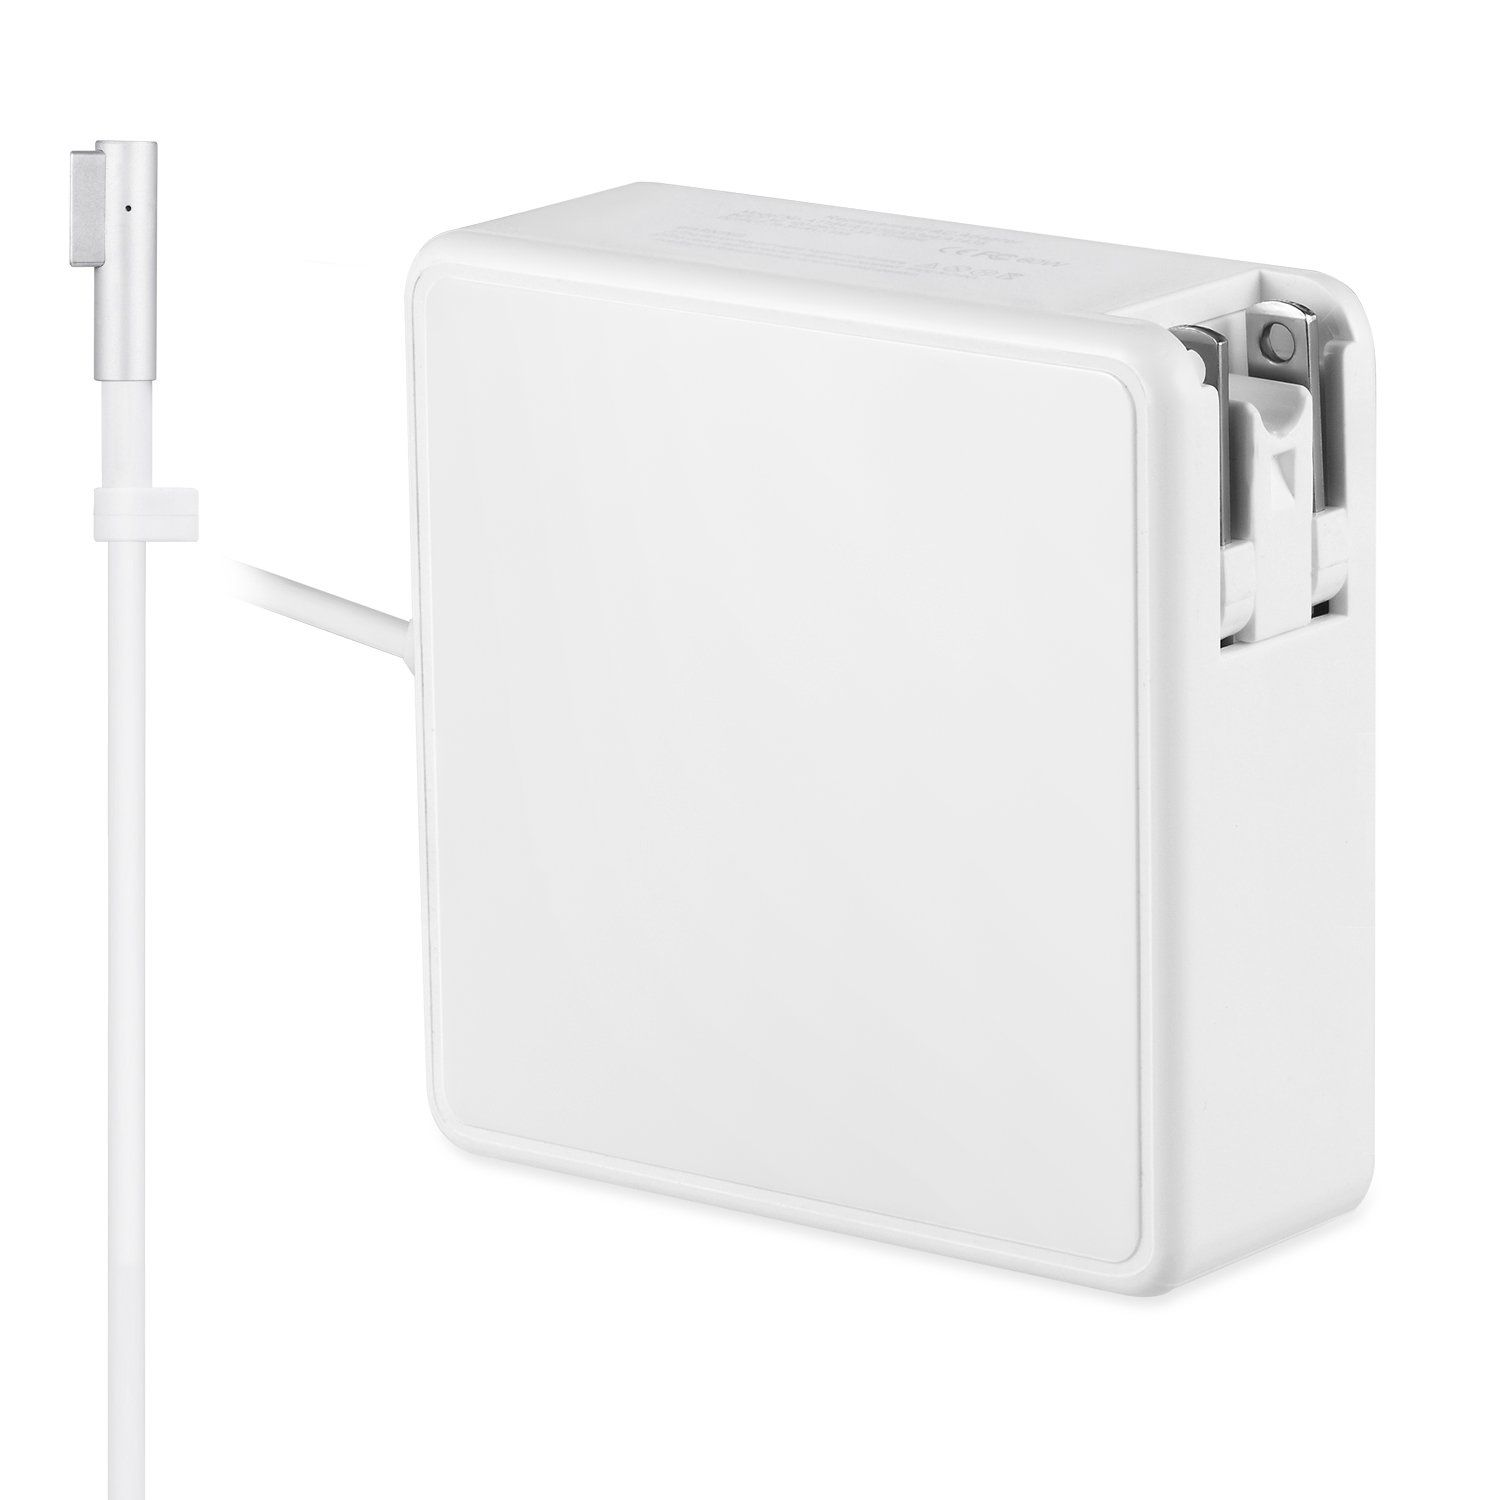 Macbook Pro Charger 85w Magsafe Power Adapter For Macbook Air Pro 13 15 17 In Retina Display L Tip Compatible With All Magsafe Macbook Pro Accessories Macbook